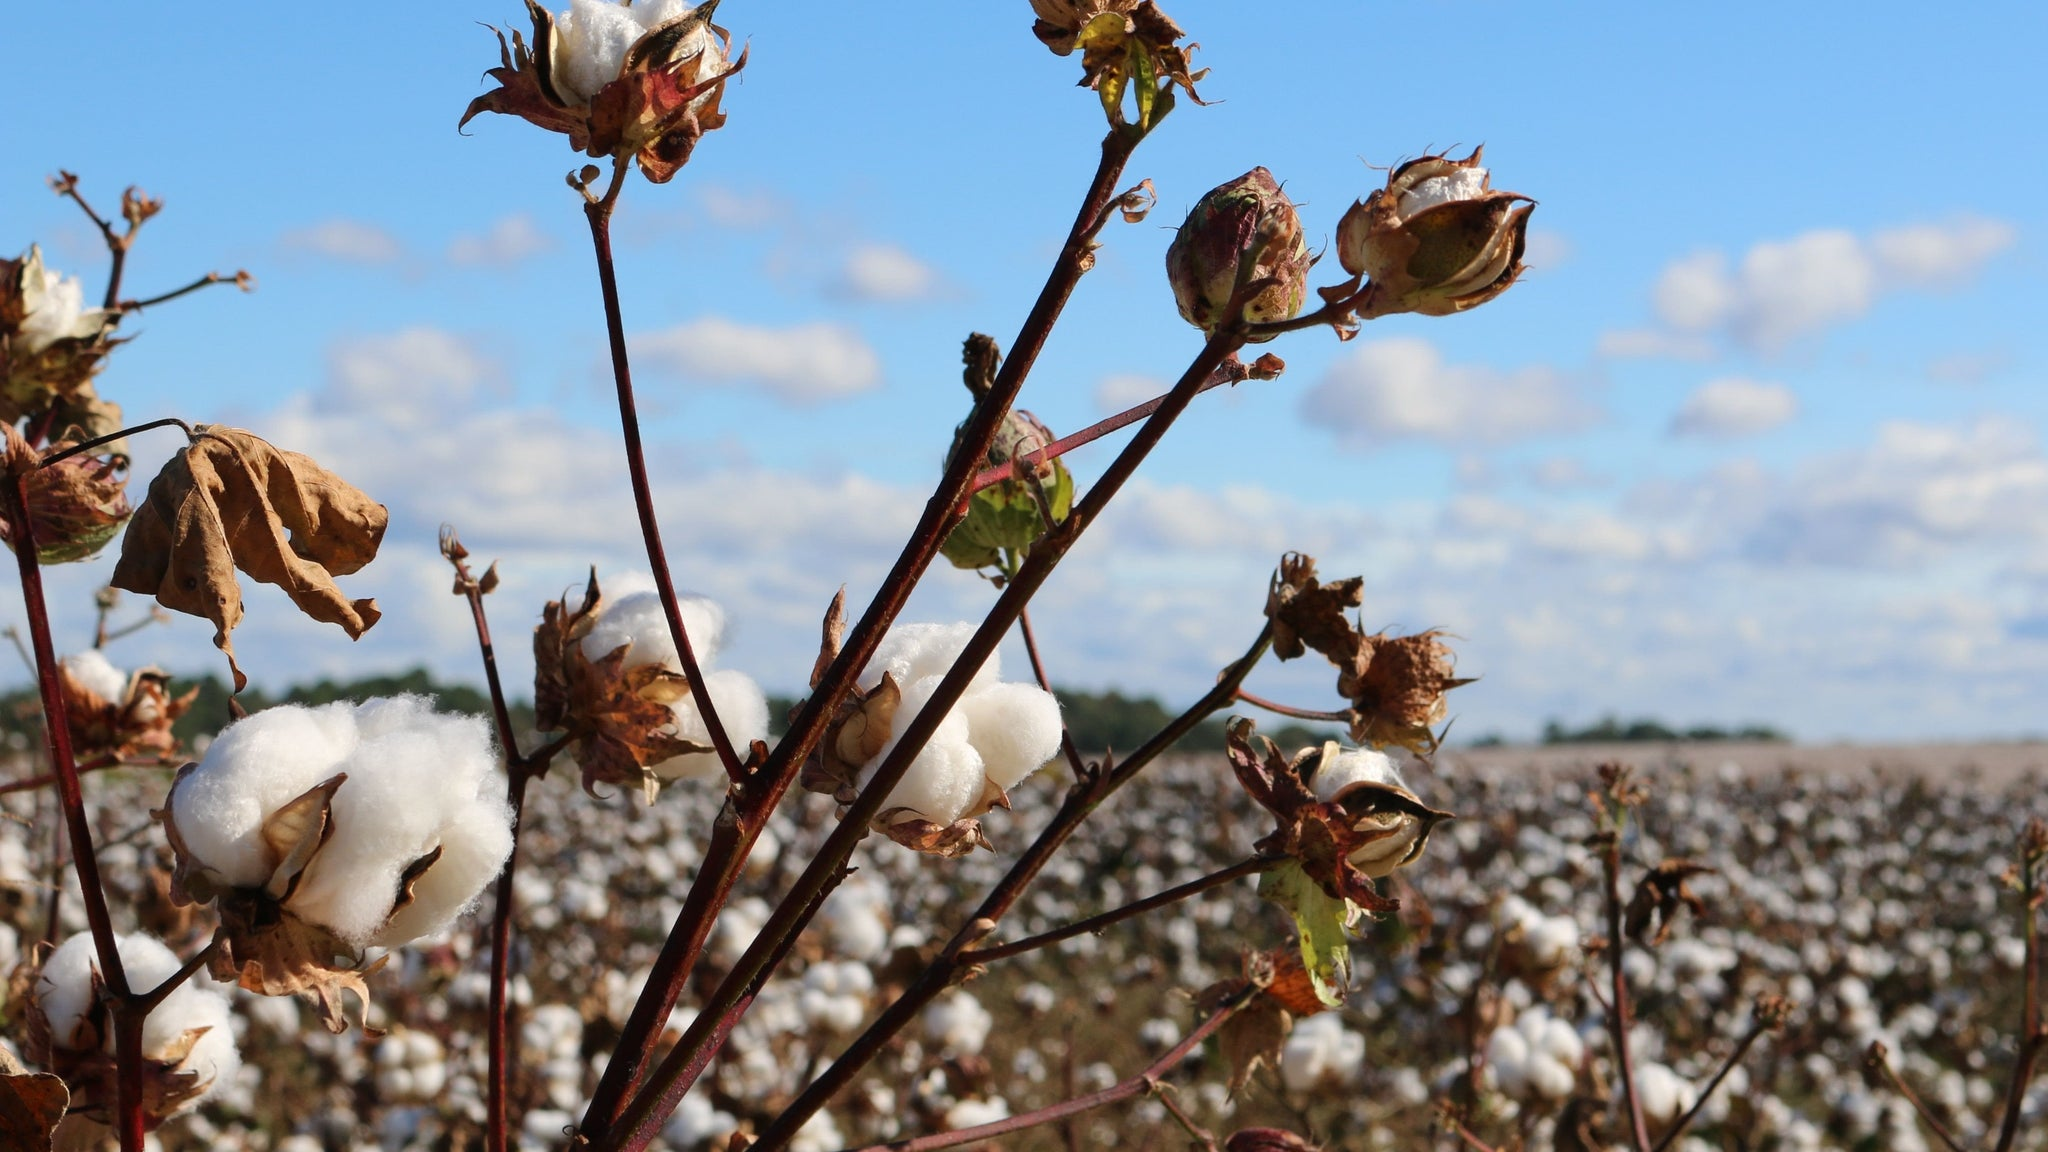 Why You Should Choose Organic Cotton Over Regular Cotton